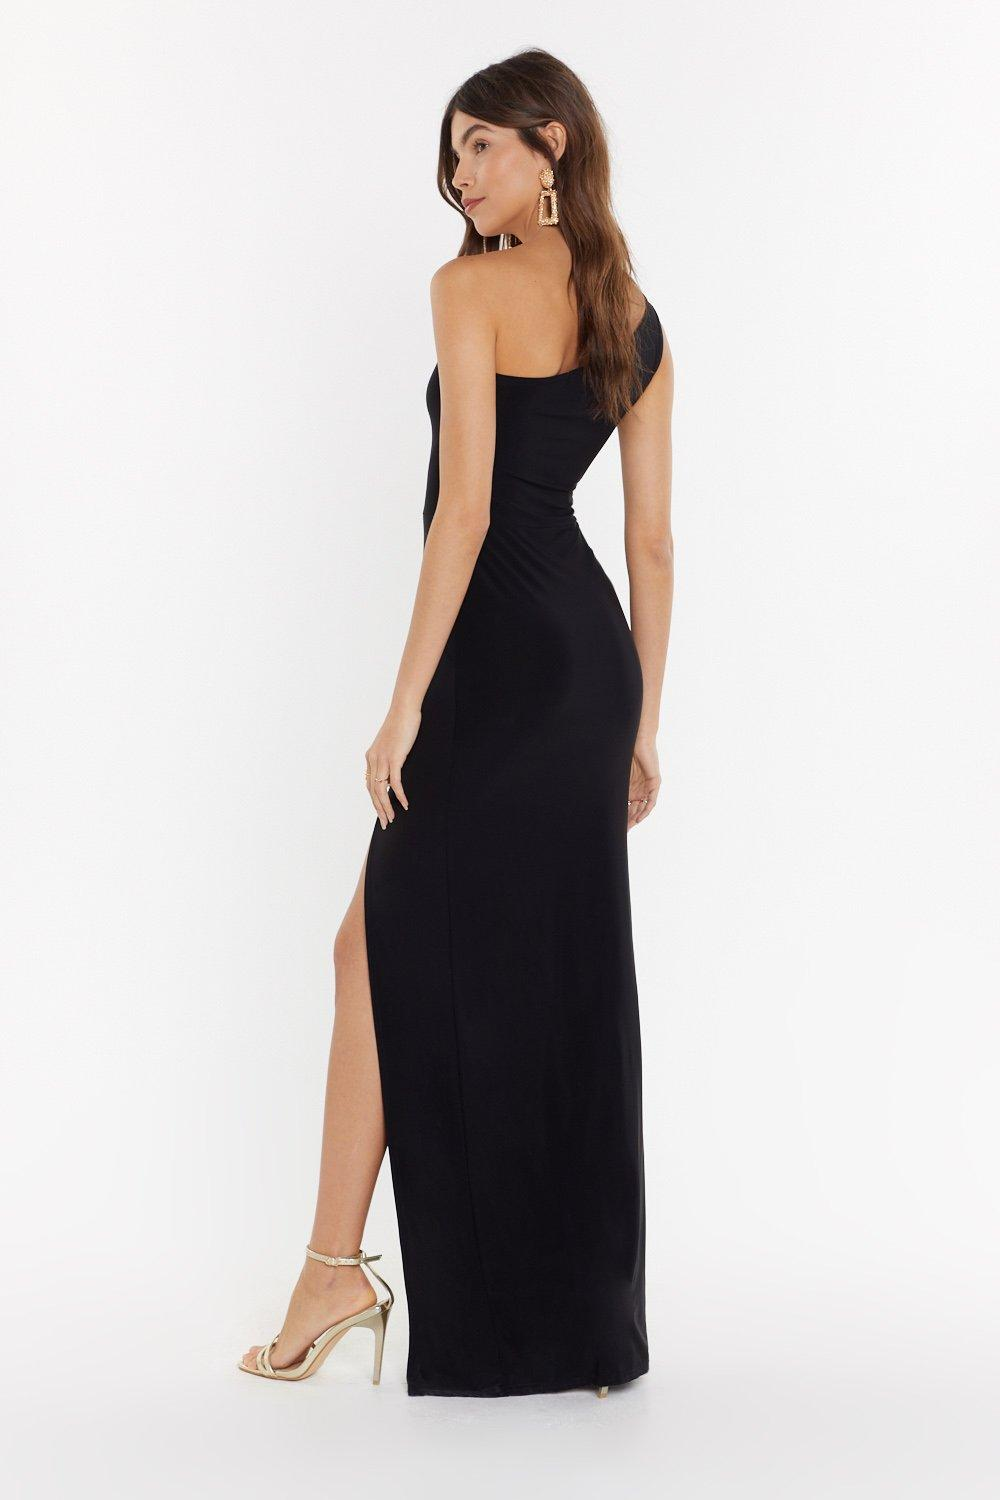 35a0b37704c Womens Black Rise to the Occasion One Shoulder Maxi Dress. Hover to zoom